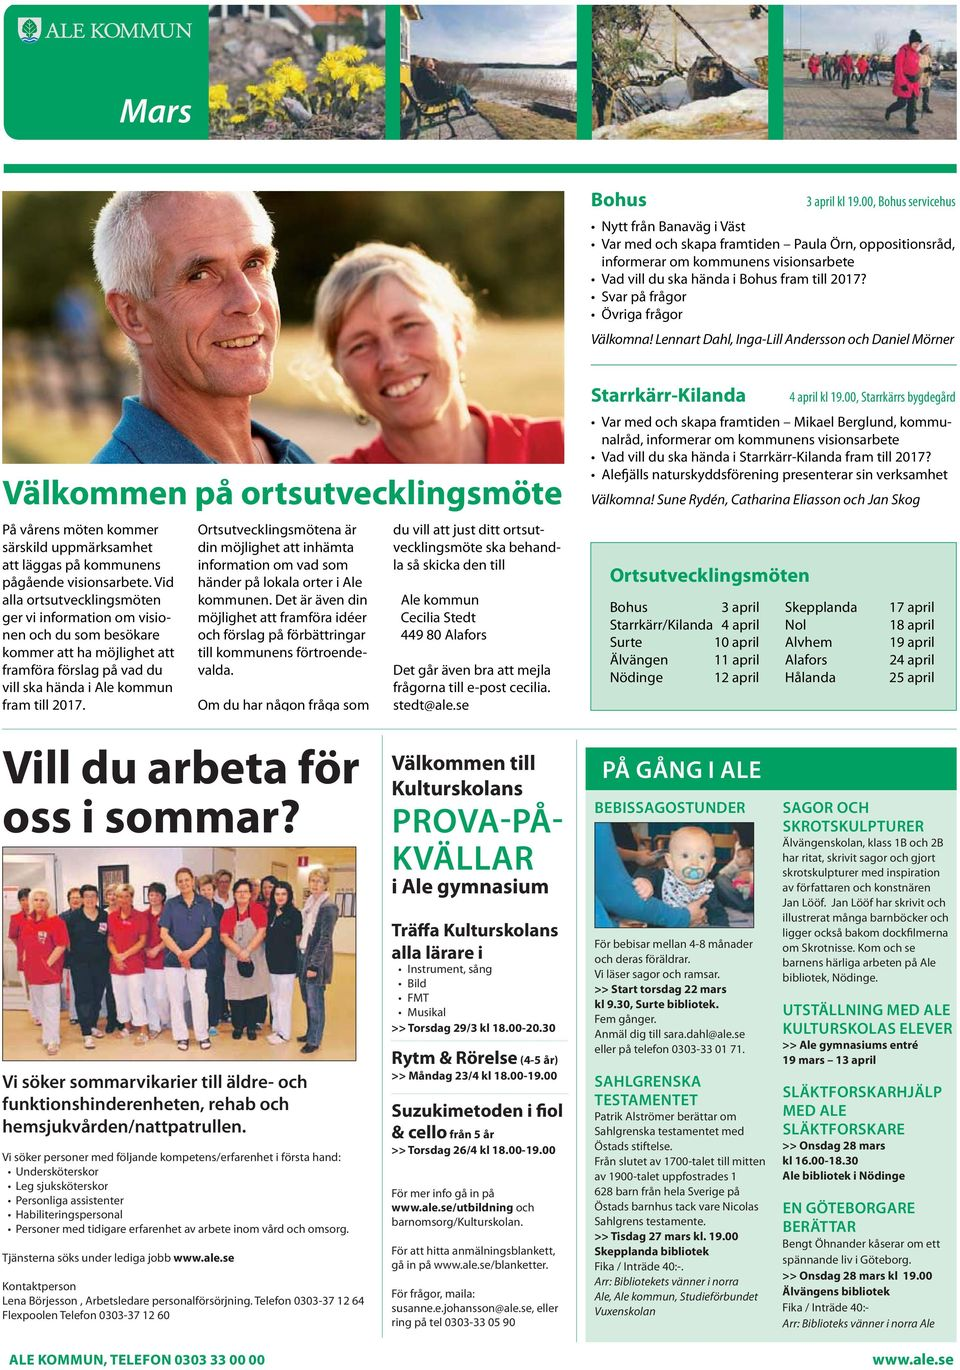 Kilanda 203 Vstra Gtalands Ln, lvngen - patient-survey.net